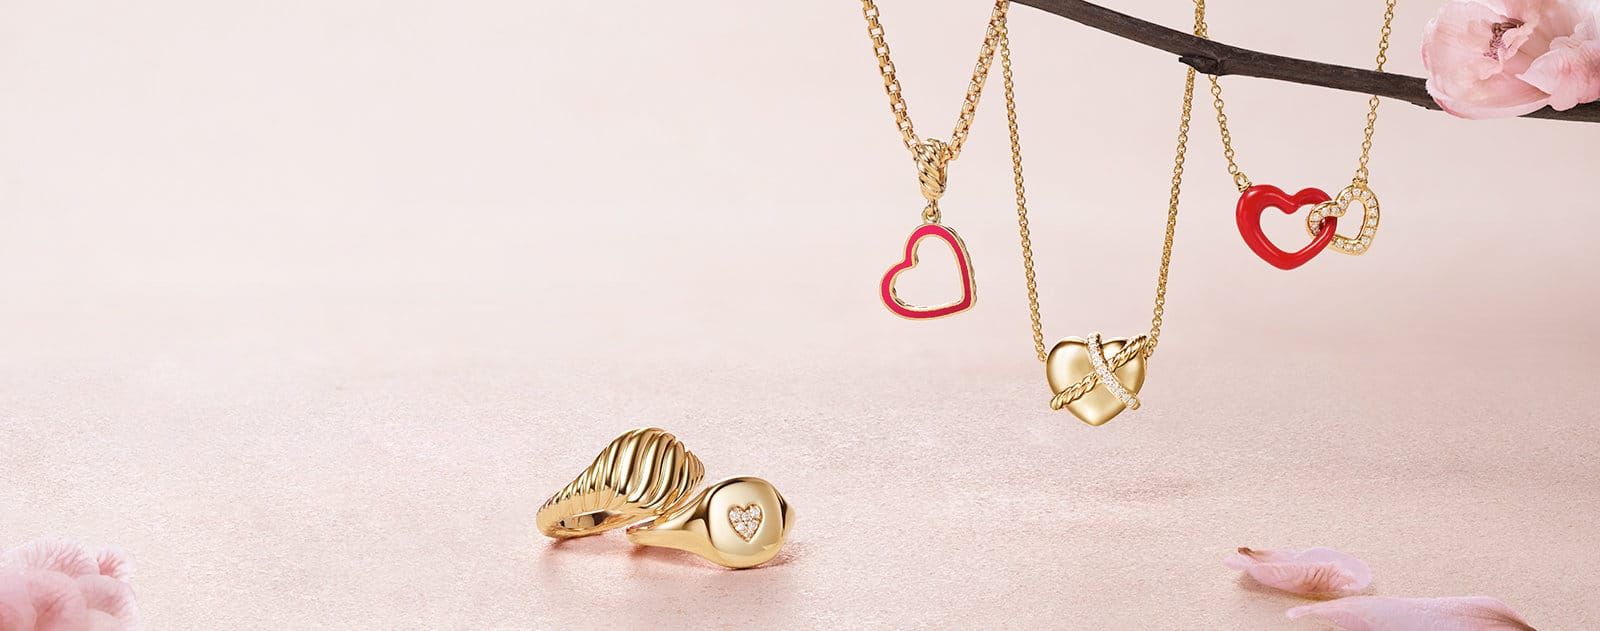 David Yurman Pinky rings in red or pink ceramic-covered sterling silver or 18K yellow gold with or without pavé diamonds sitting on a light pink stone background next to David Yurman heart-shaped pendant necklaces in 18K yellow gold with pavé diamonds and red enamel hanging next to a cherry blossom branch.